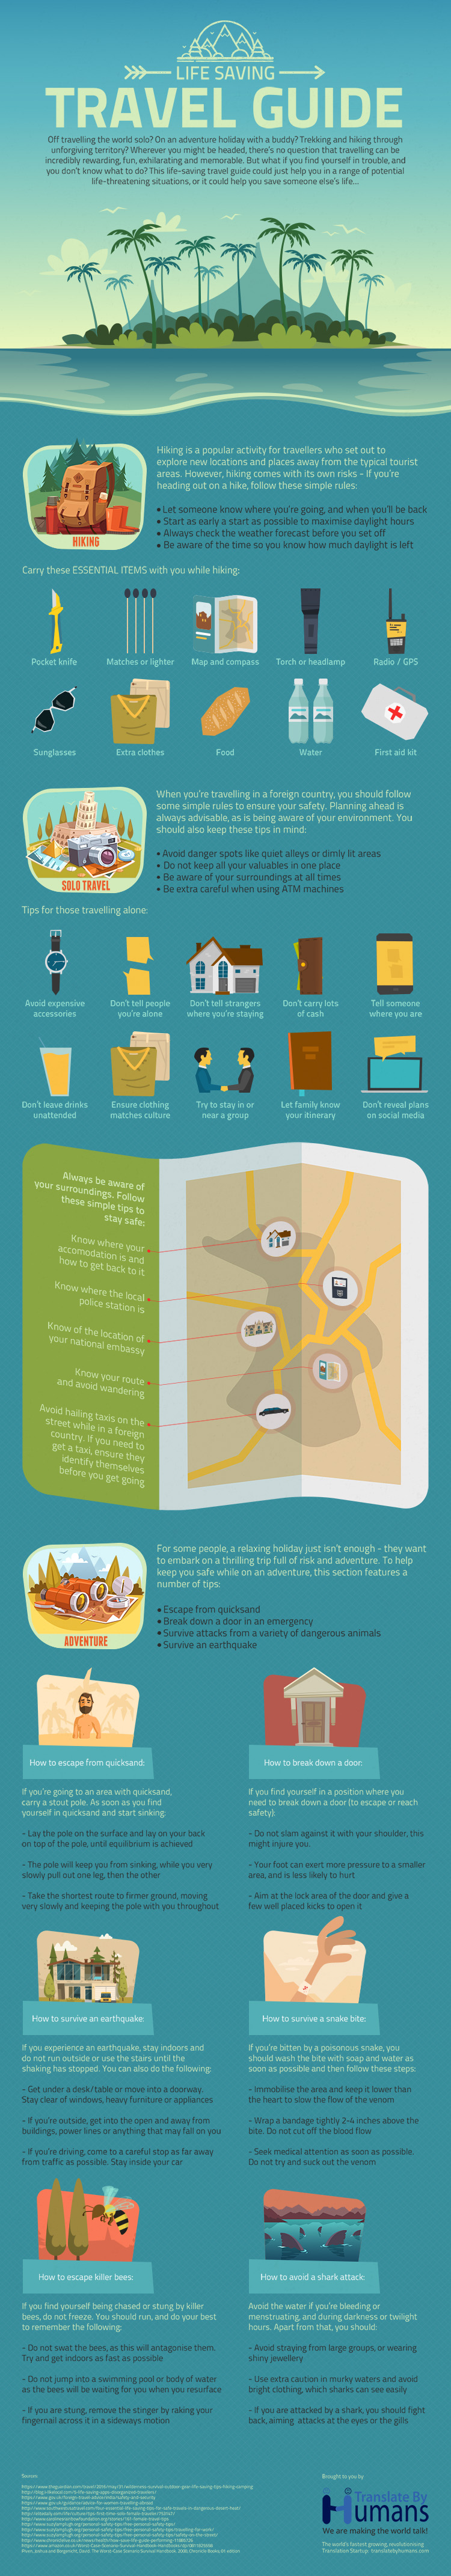 A Travel Guide For Emergencies - Infographic